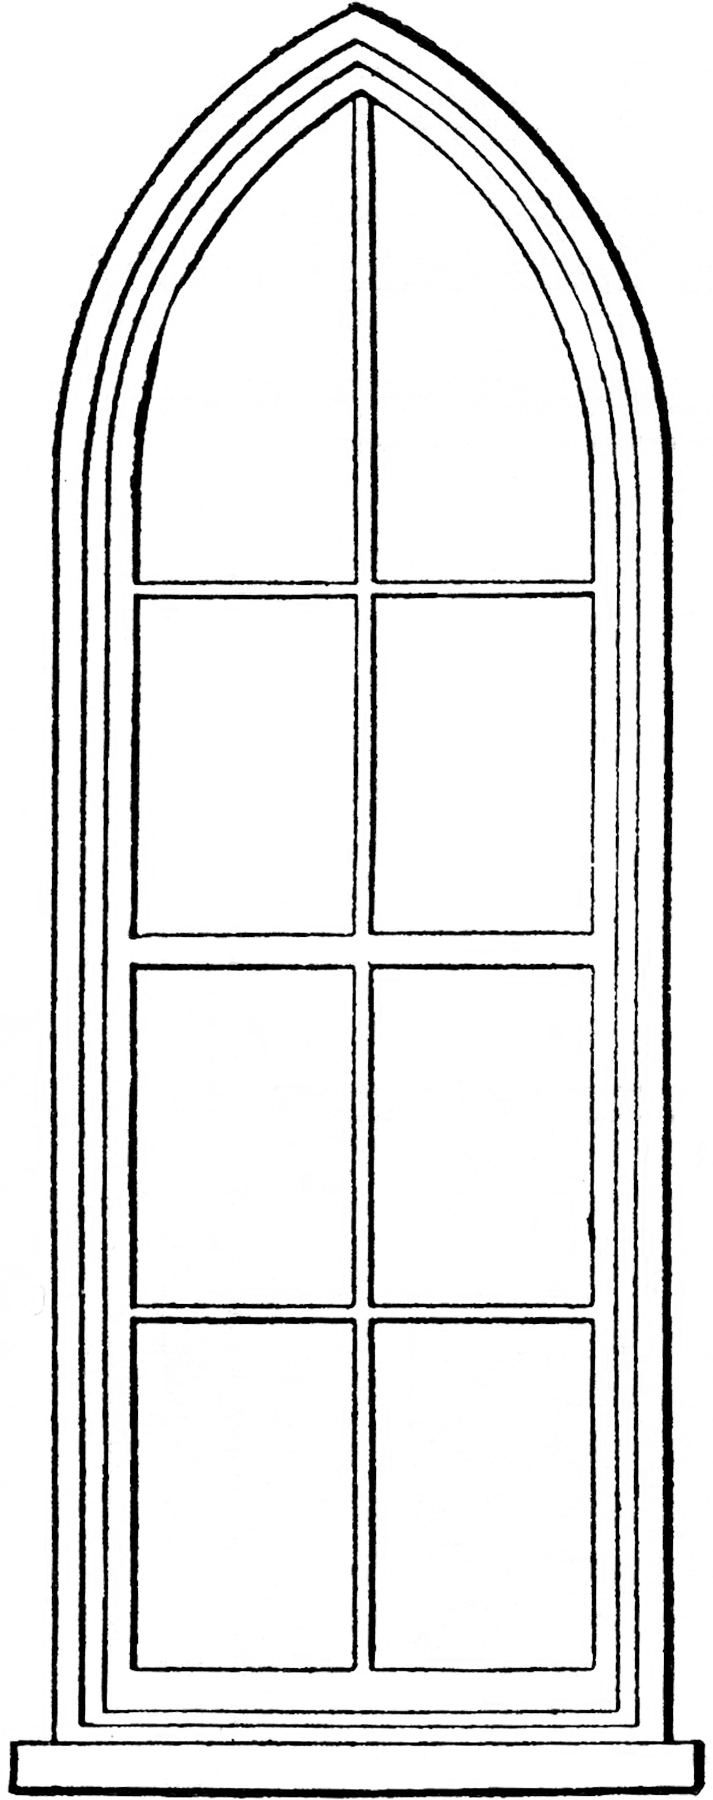 Windows clipart #6, Download drawings